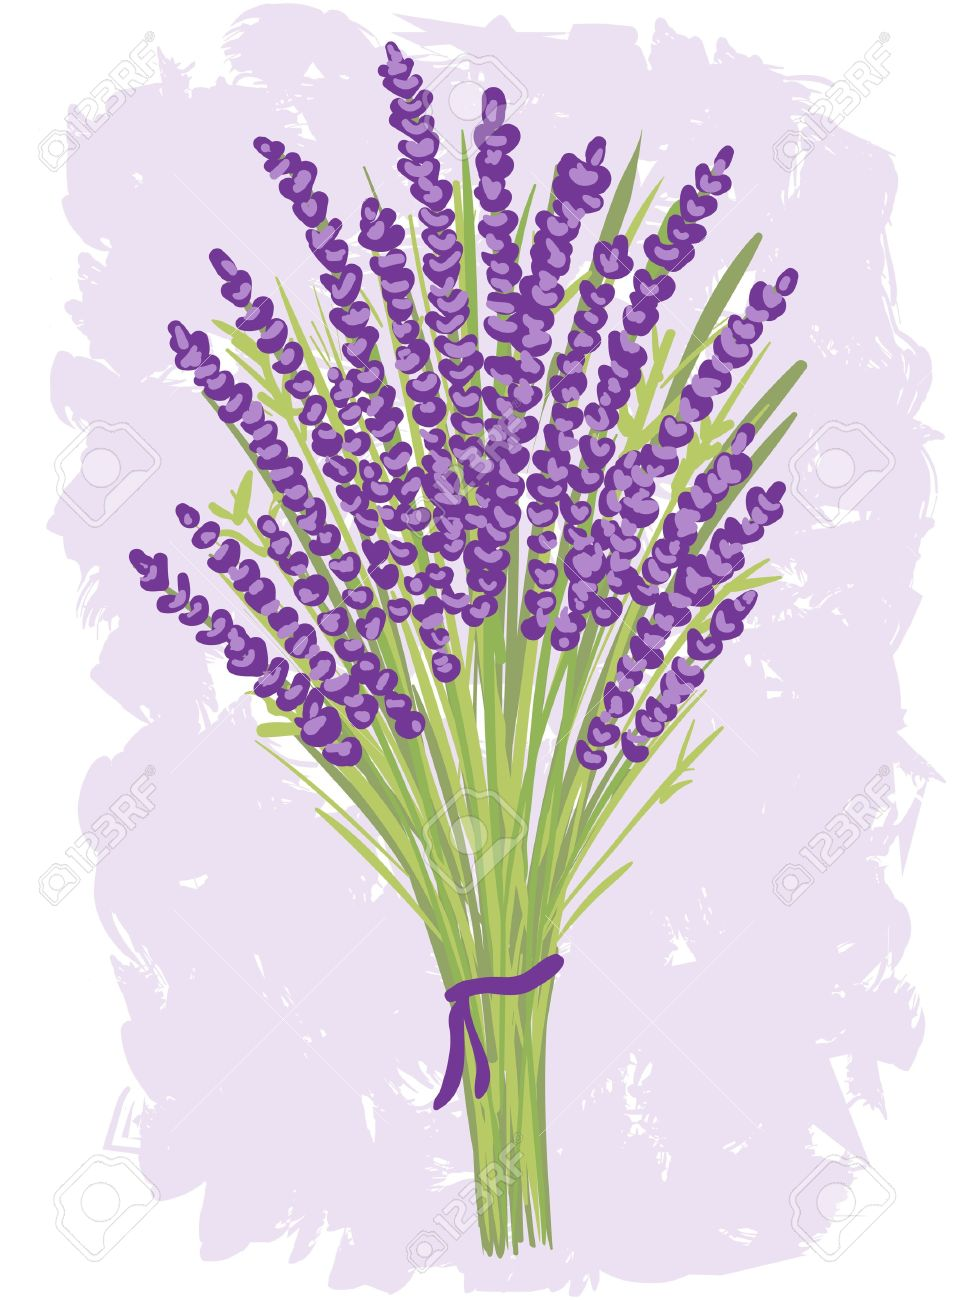 Illustration Of Lavender Bouquet On Watercolor Background Royalty Free Cliparts Vectors And Stock Illustration Image 15196659